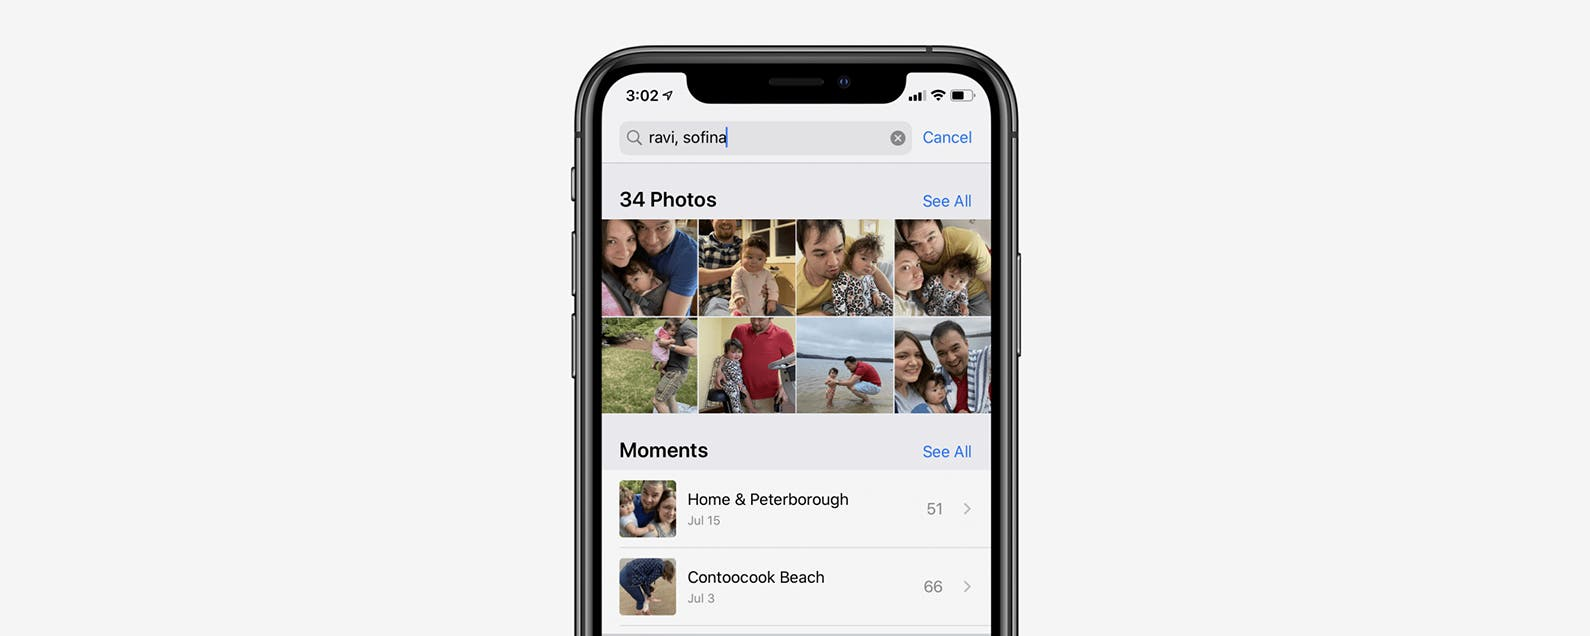 The 2 Fastest Ways To Organize Photos On An Iphone